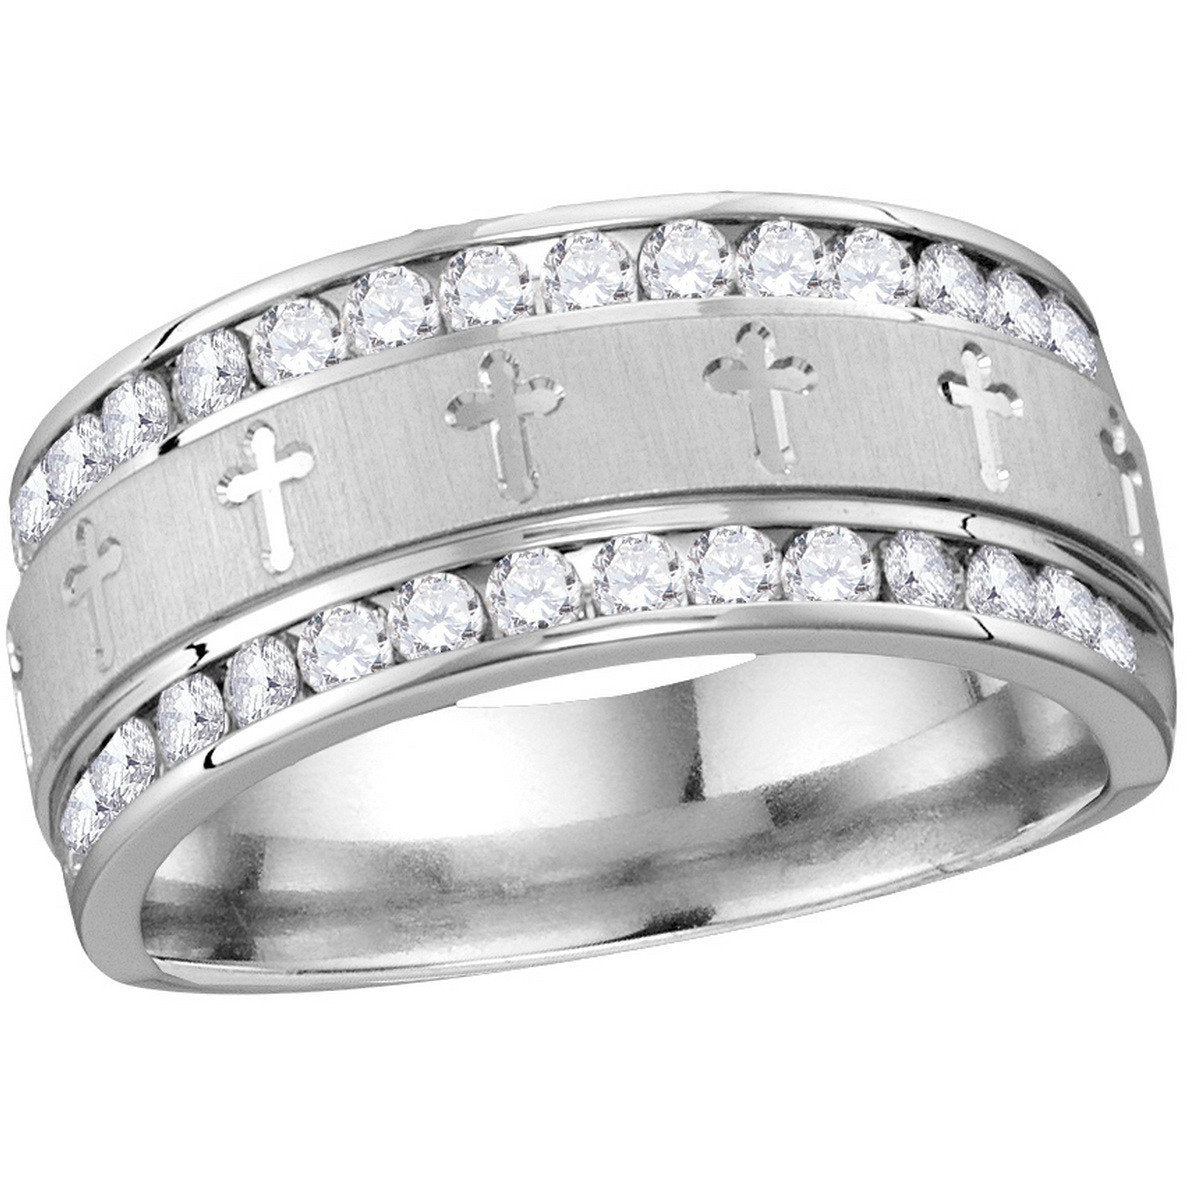 14k White Gold Mens Round Diamond Grecco Christian Cross Wedding Anniversary Band Ring 1.00 Cttw 114561 - shirin-diamonds